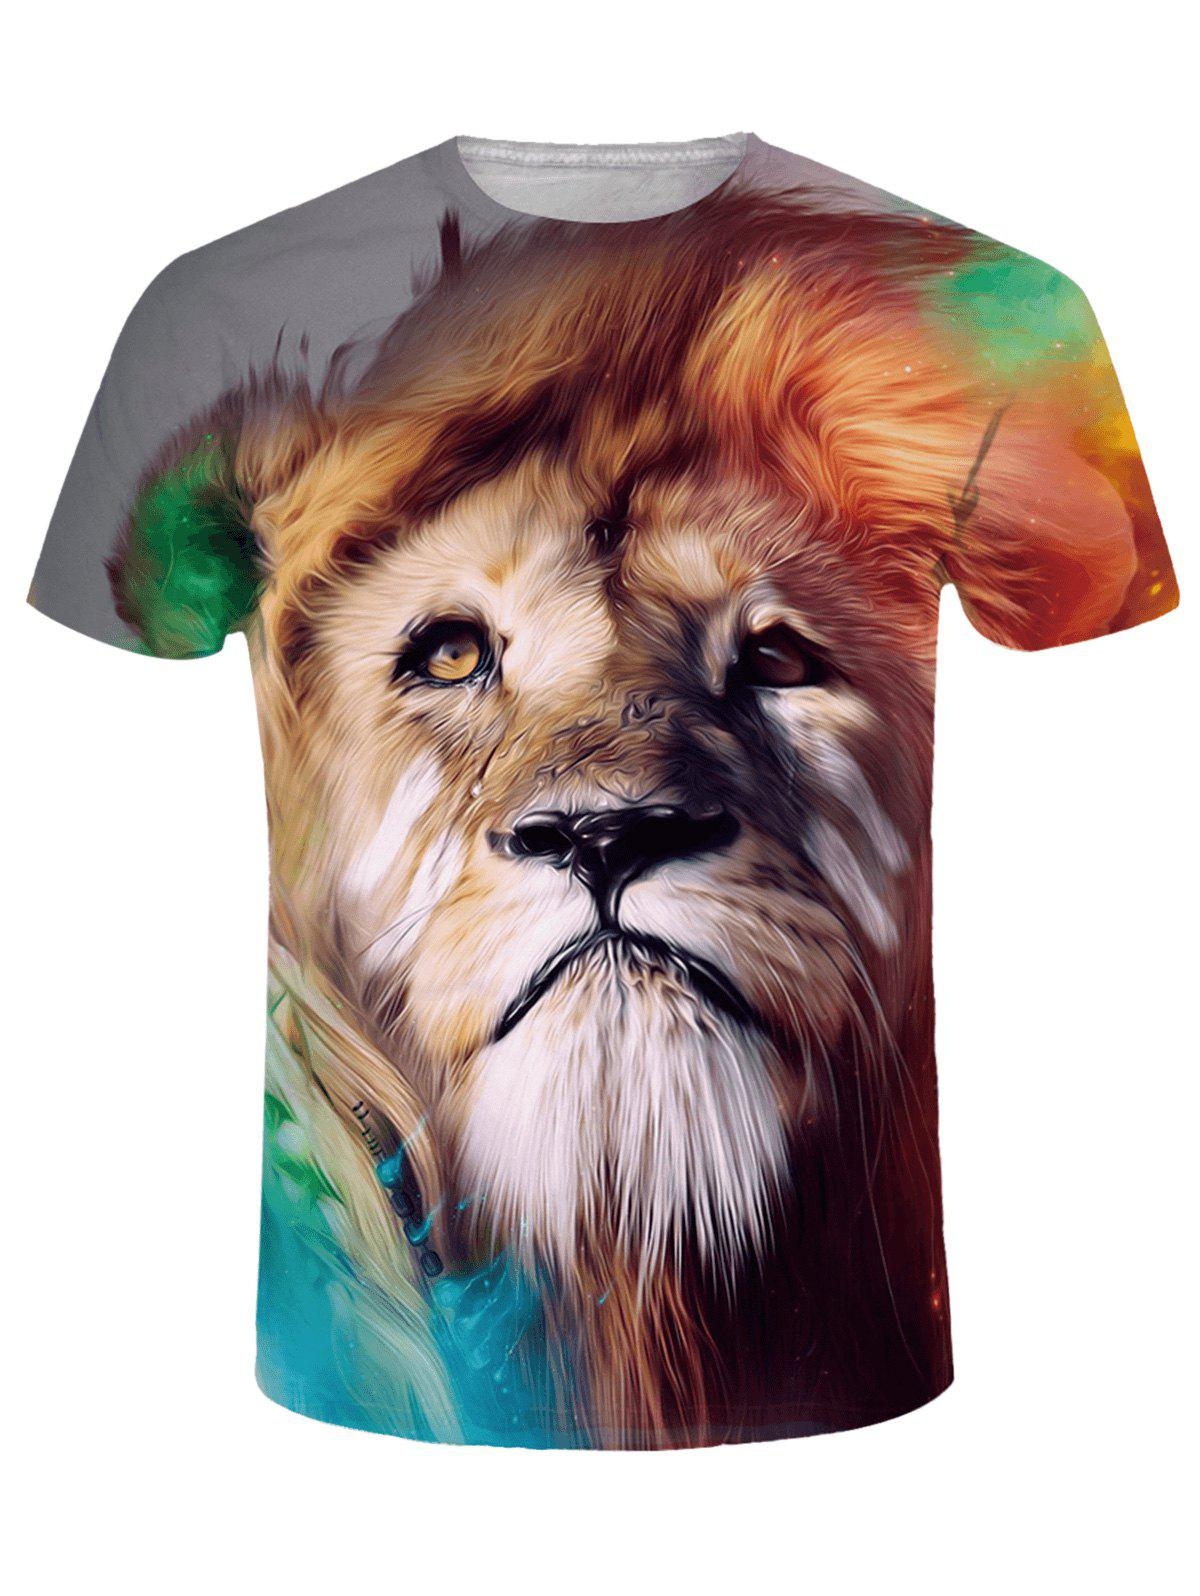 Store Crew Neck 3D Tearful Lion Print Tee